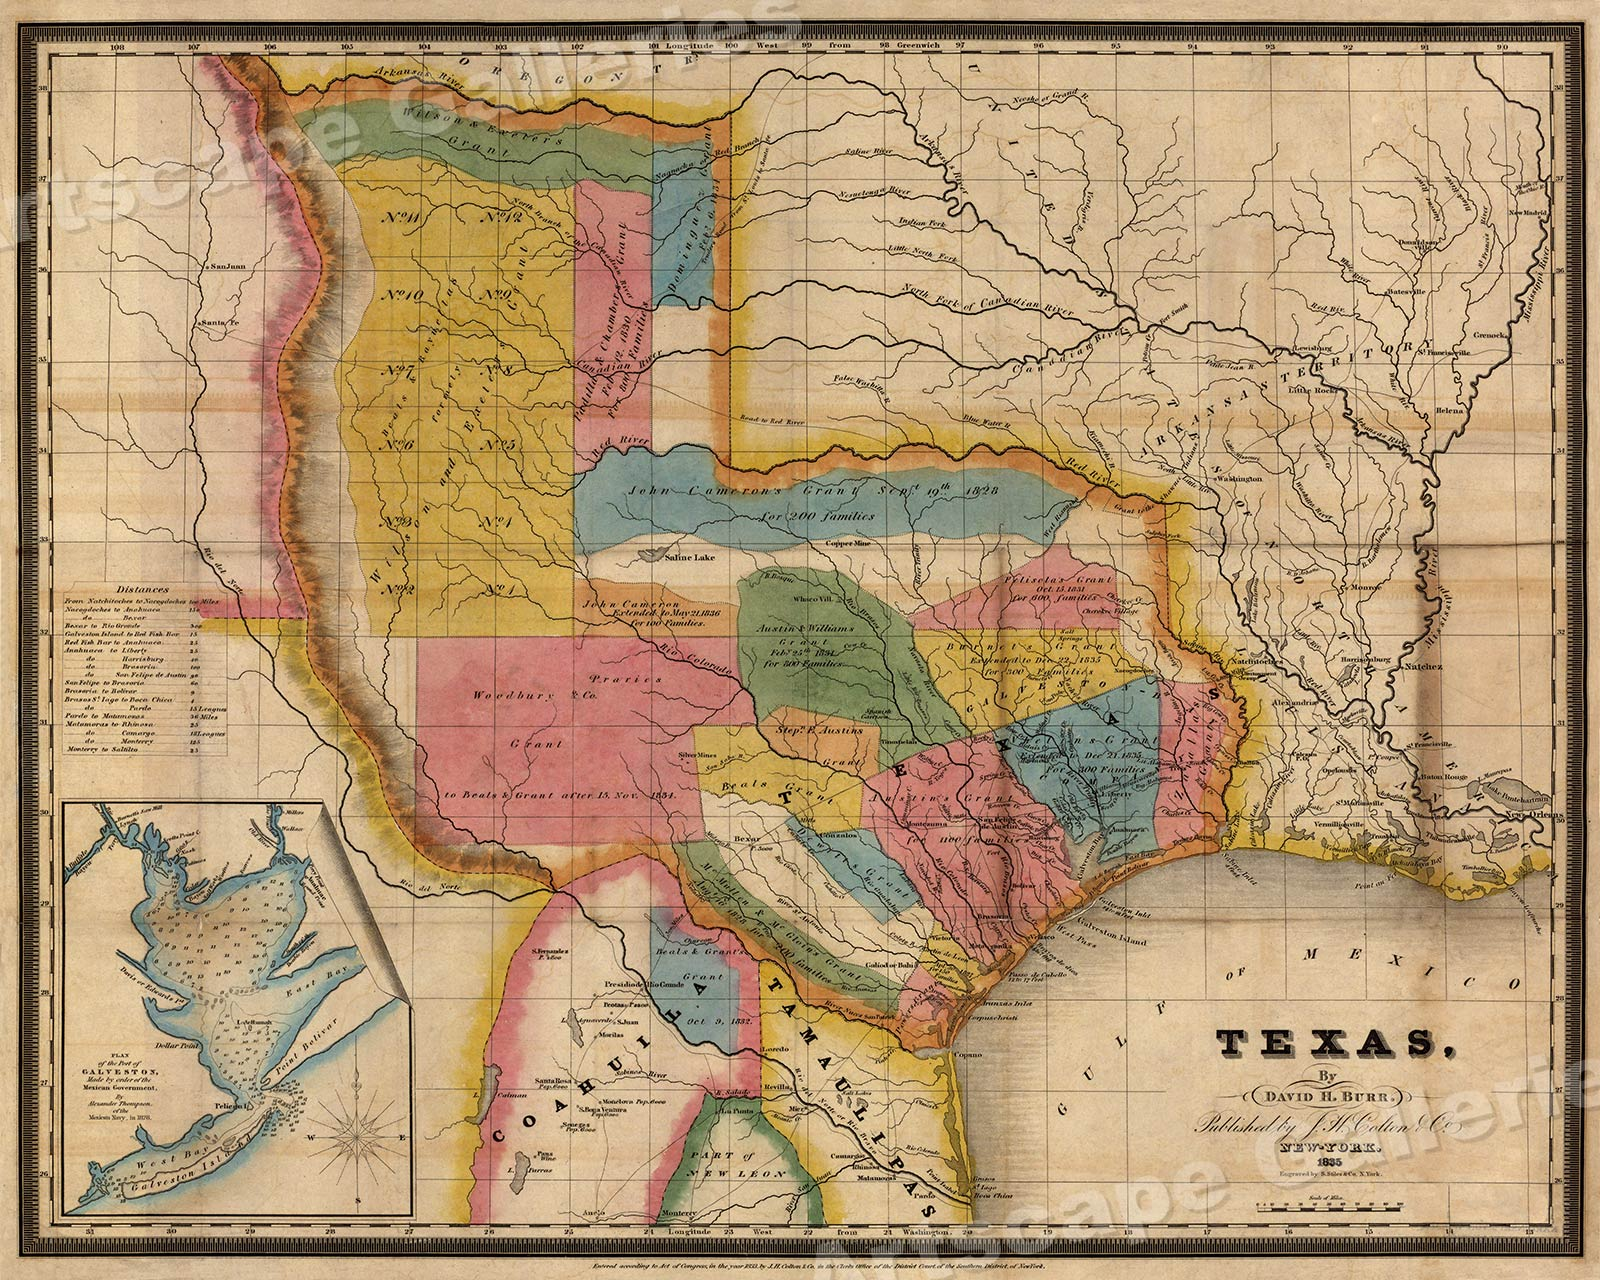 Map Of Texas 1835.Details About 1835 Territory Of Texas Map Of Land Grants 24x30